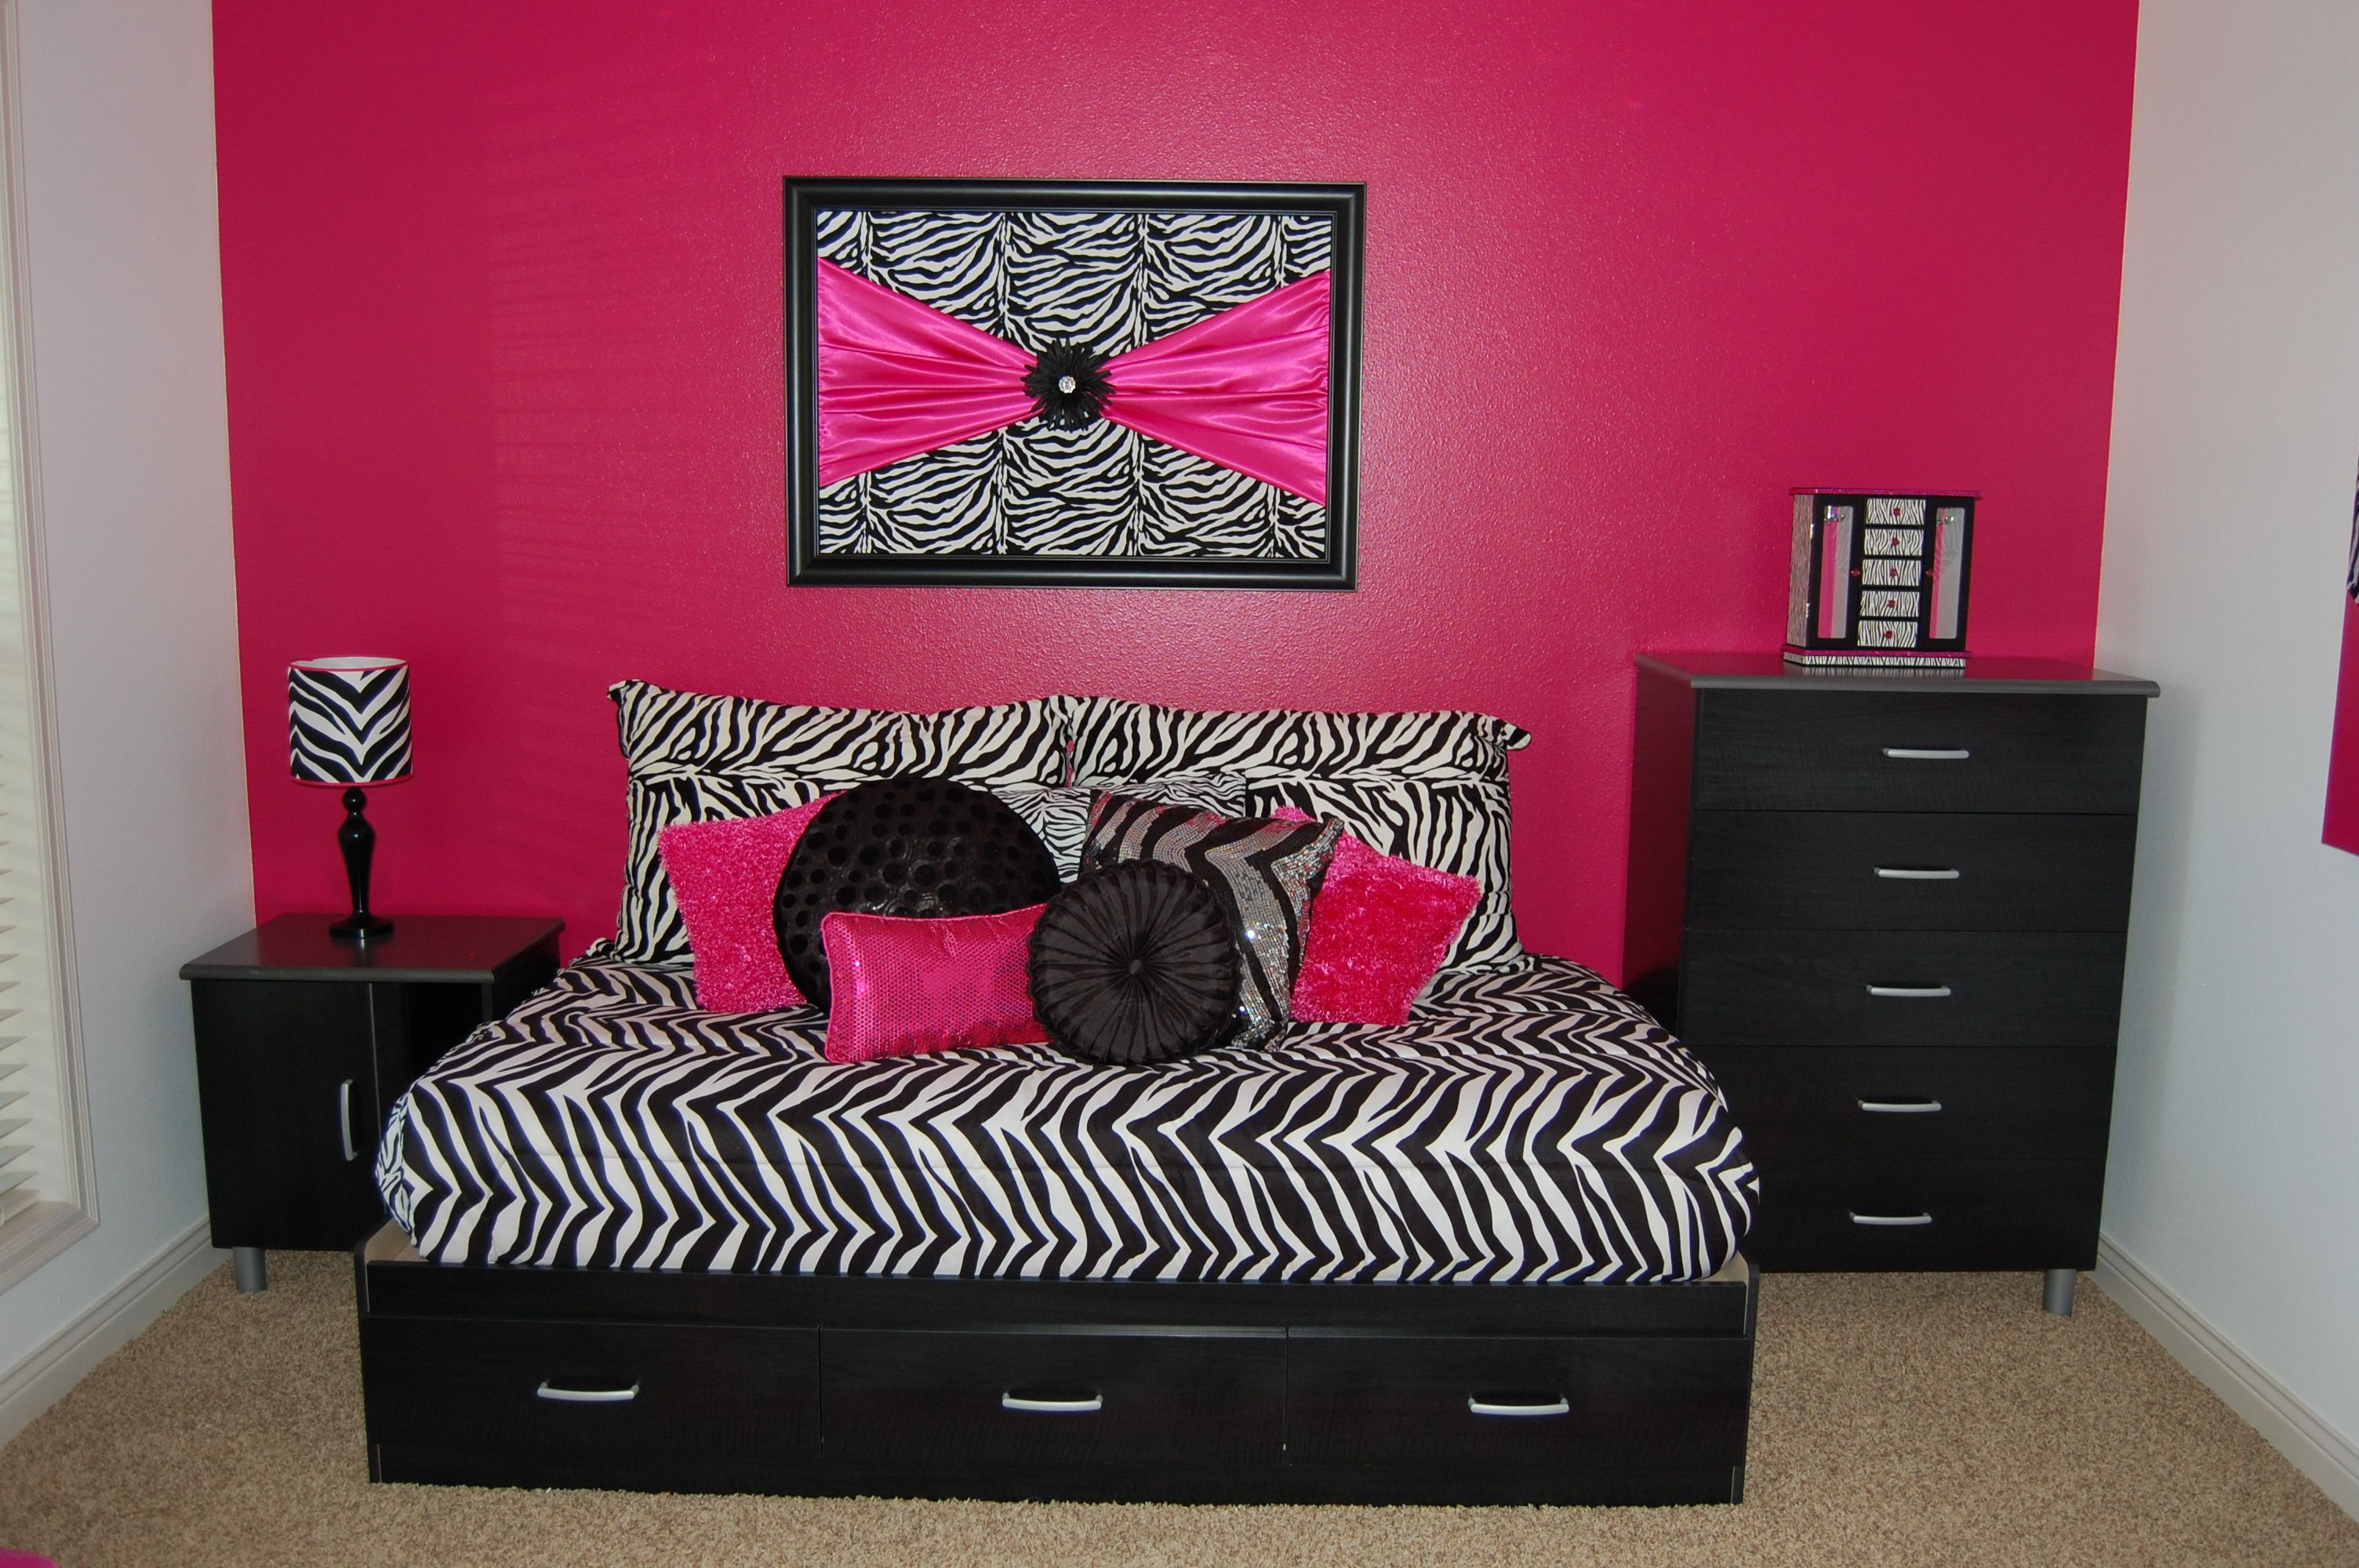 Zebra print bedroom set - Black And White Zebra Print Bedroom Ideas Photos Awesome Zebra Print Accessories For Bedroom